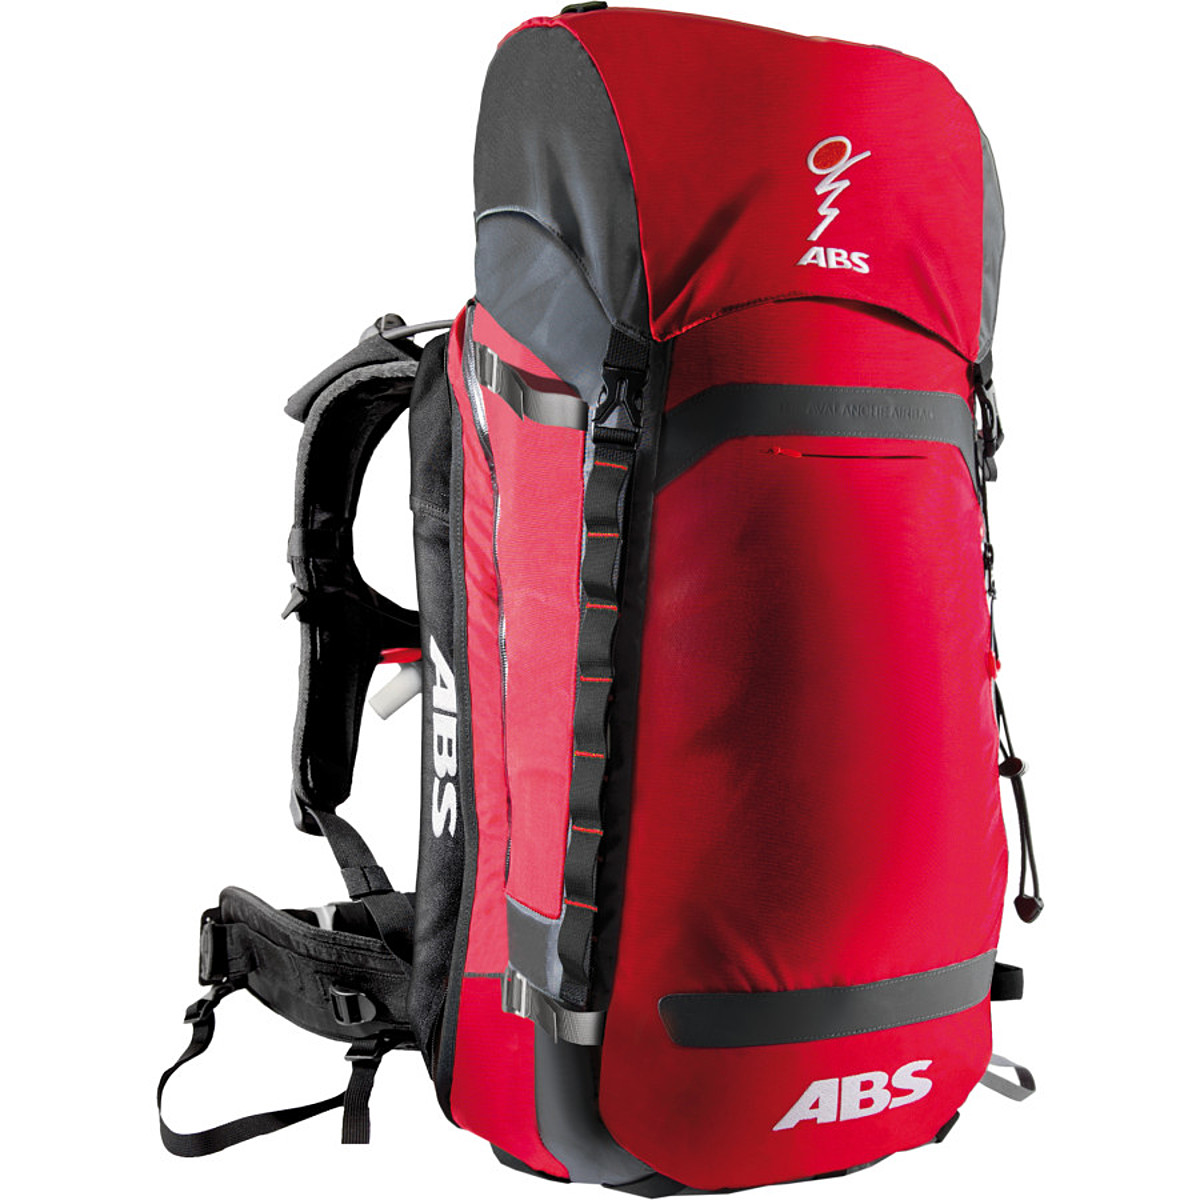 ABS Vario 40 Backpack